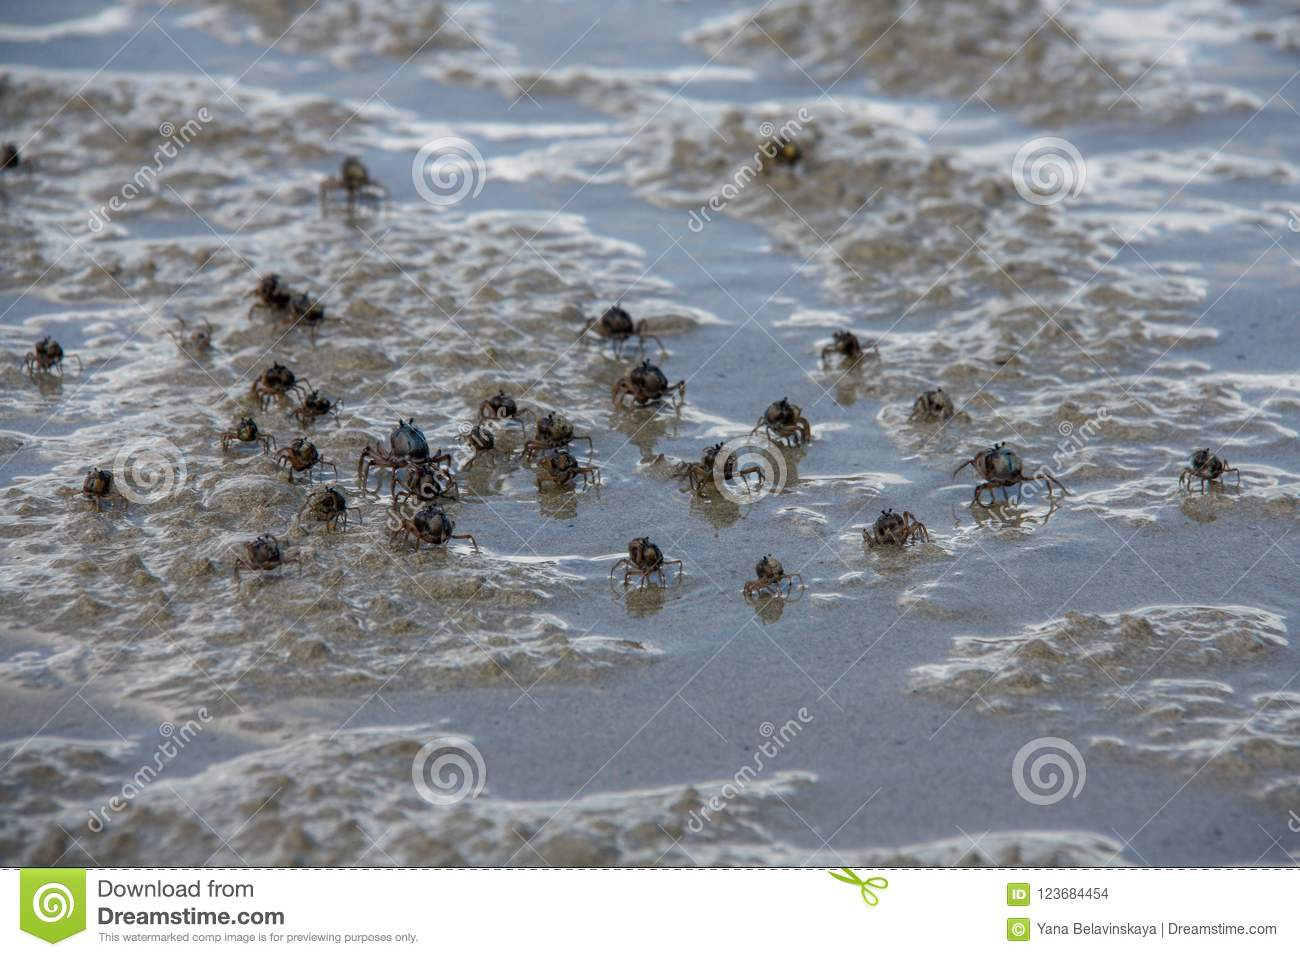 Small cute crabs running on the sand sea beach